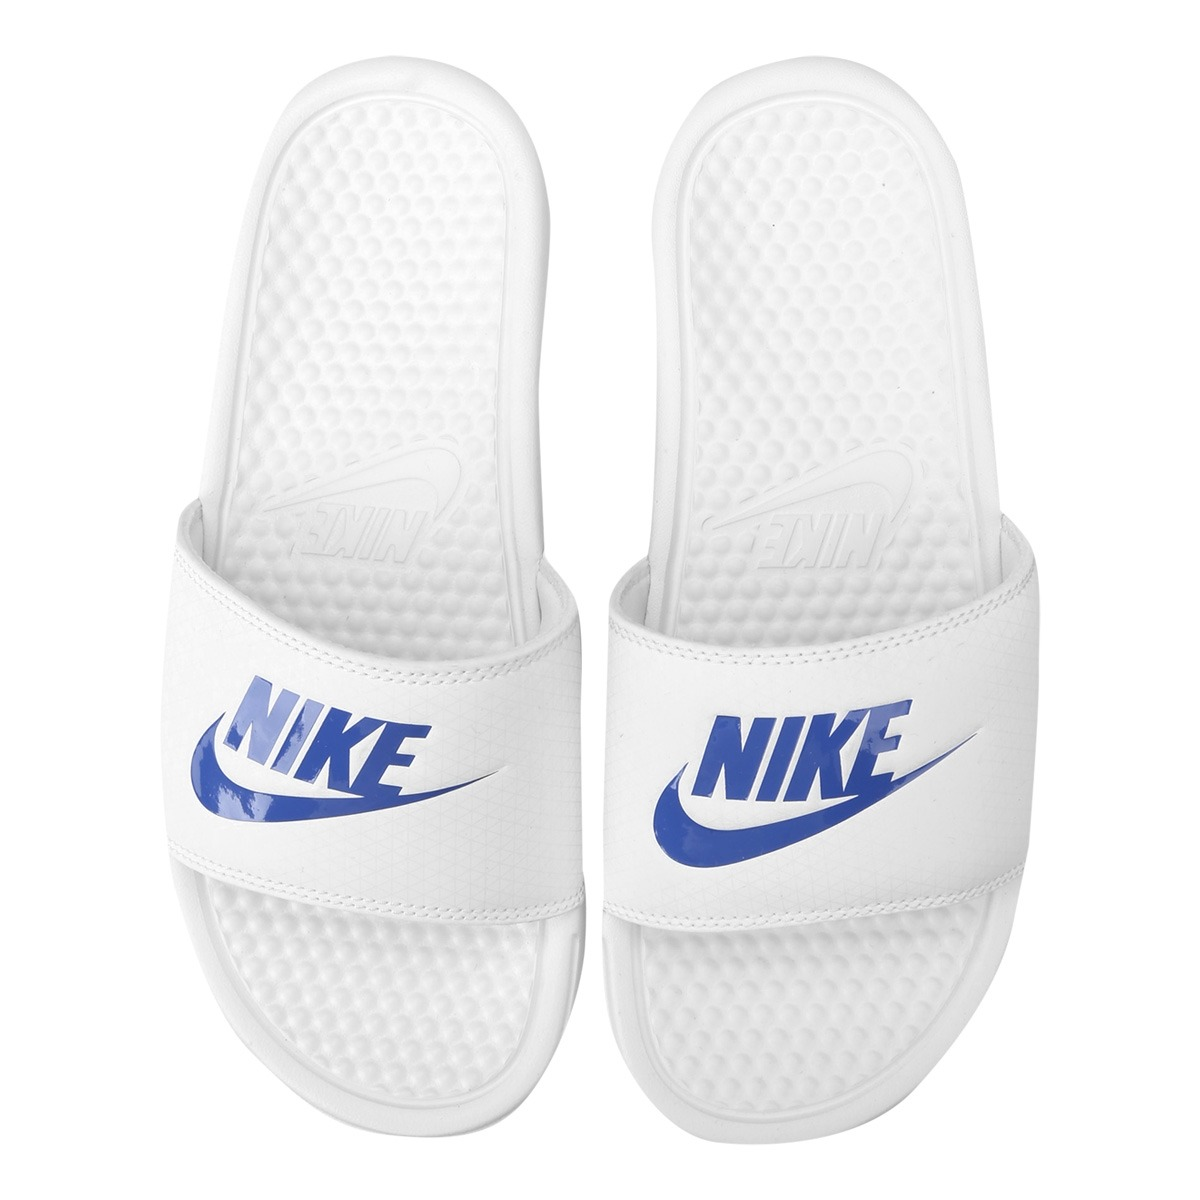 e5e36267b1e chinelo sandalia nike benassi just do it original com nfe. Carregando zoom.